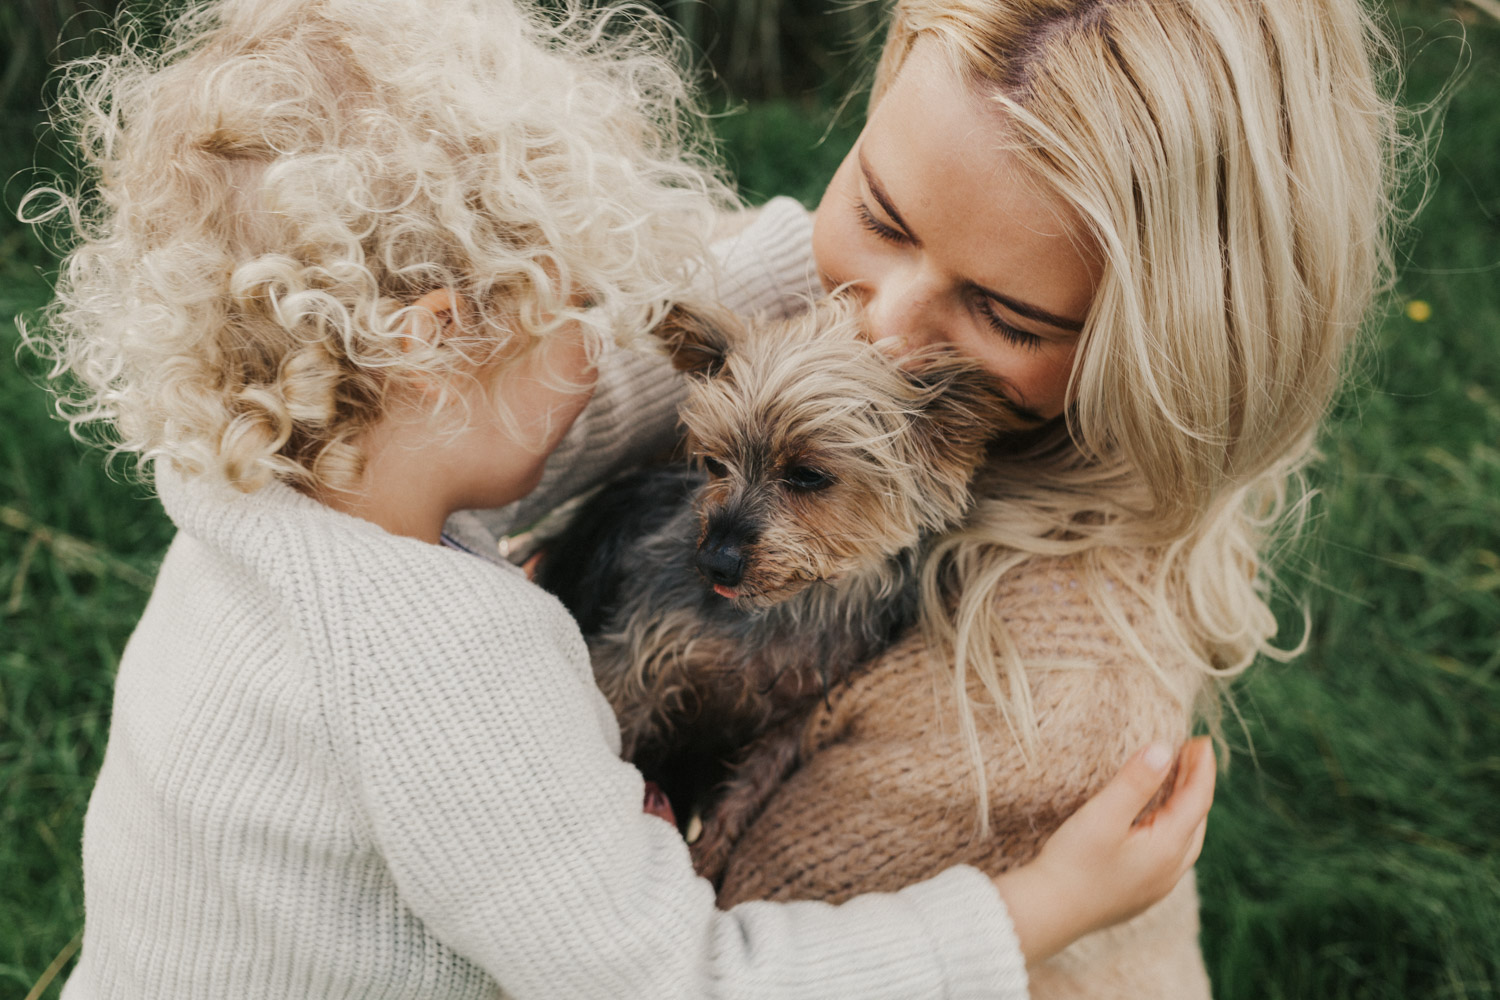 Cute family photos with your pets